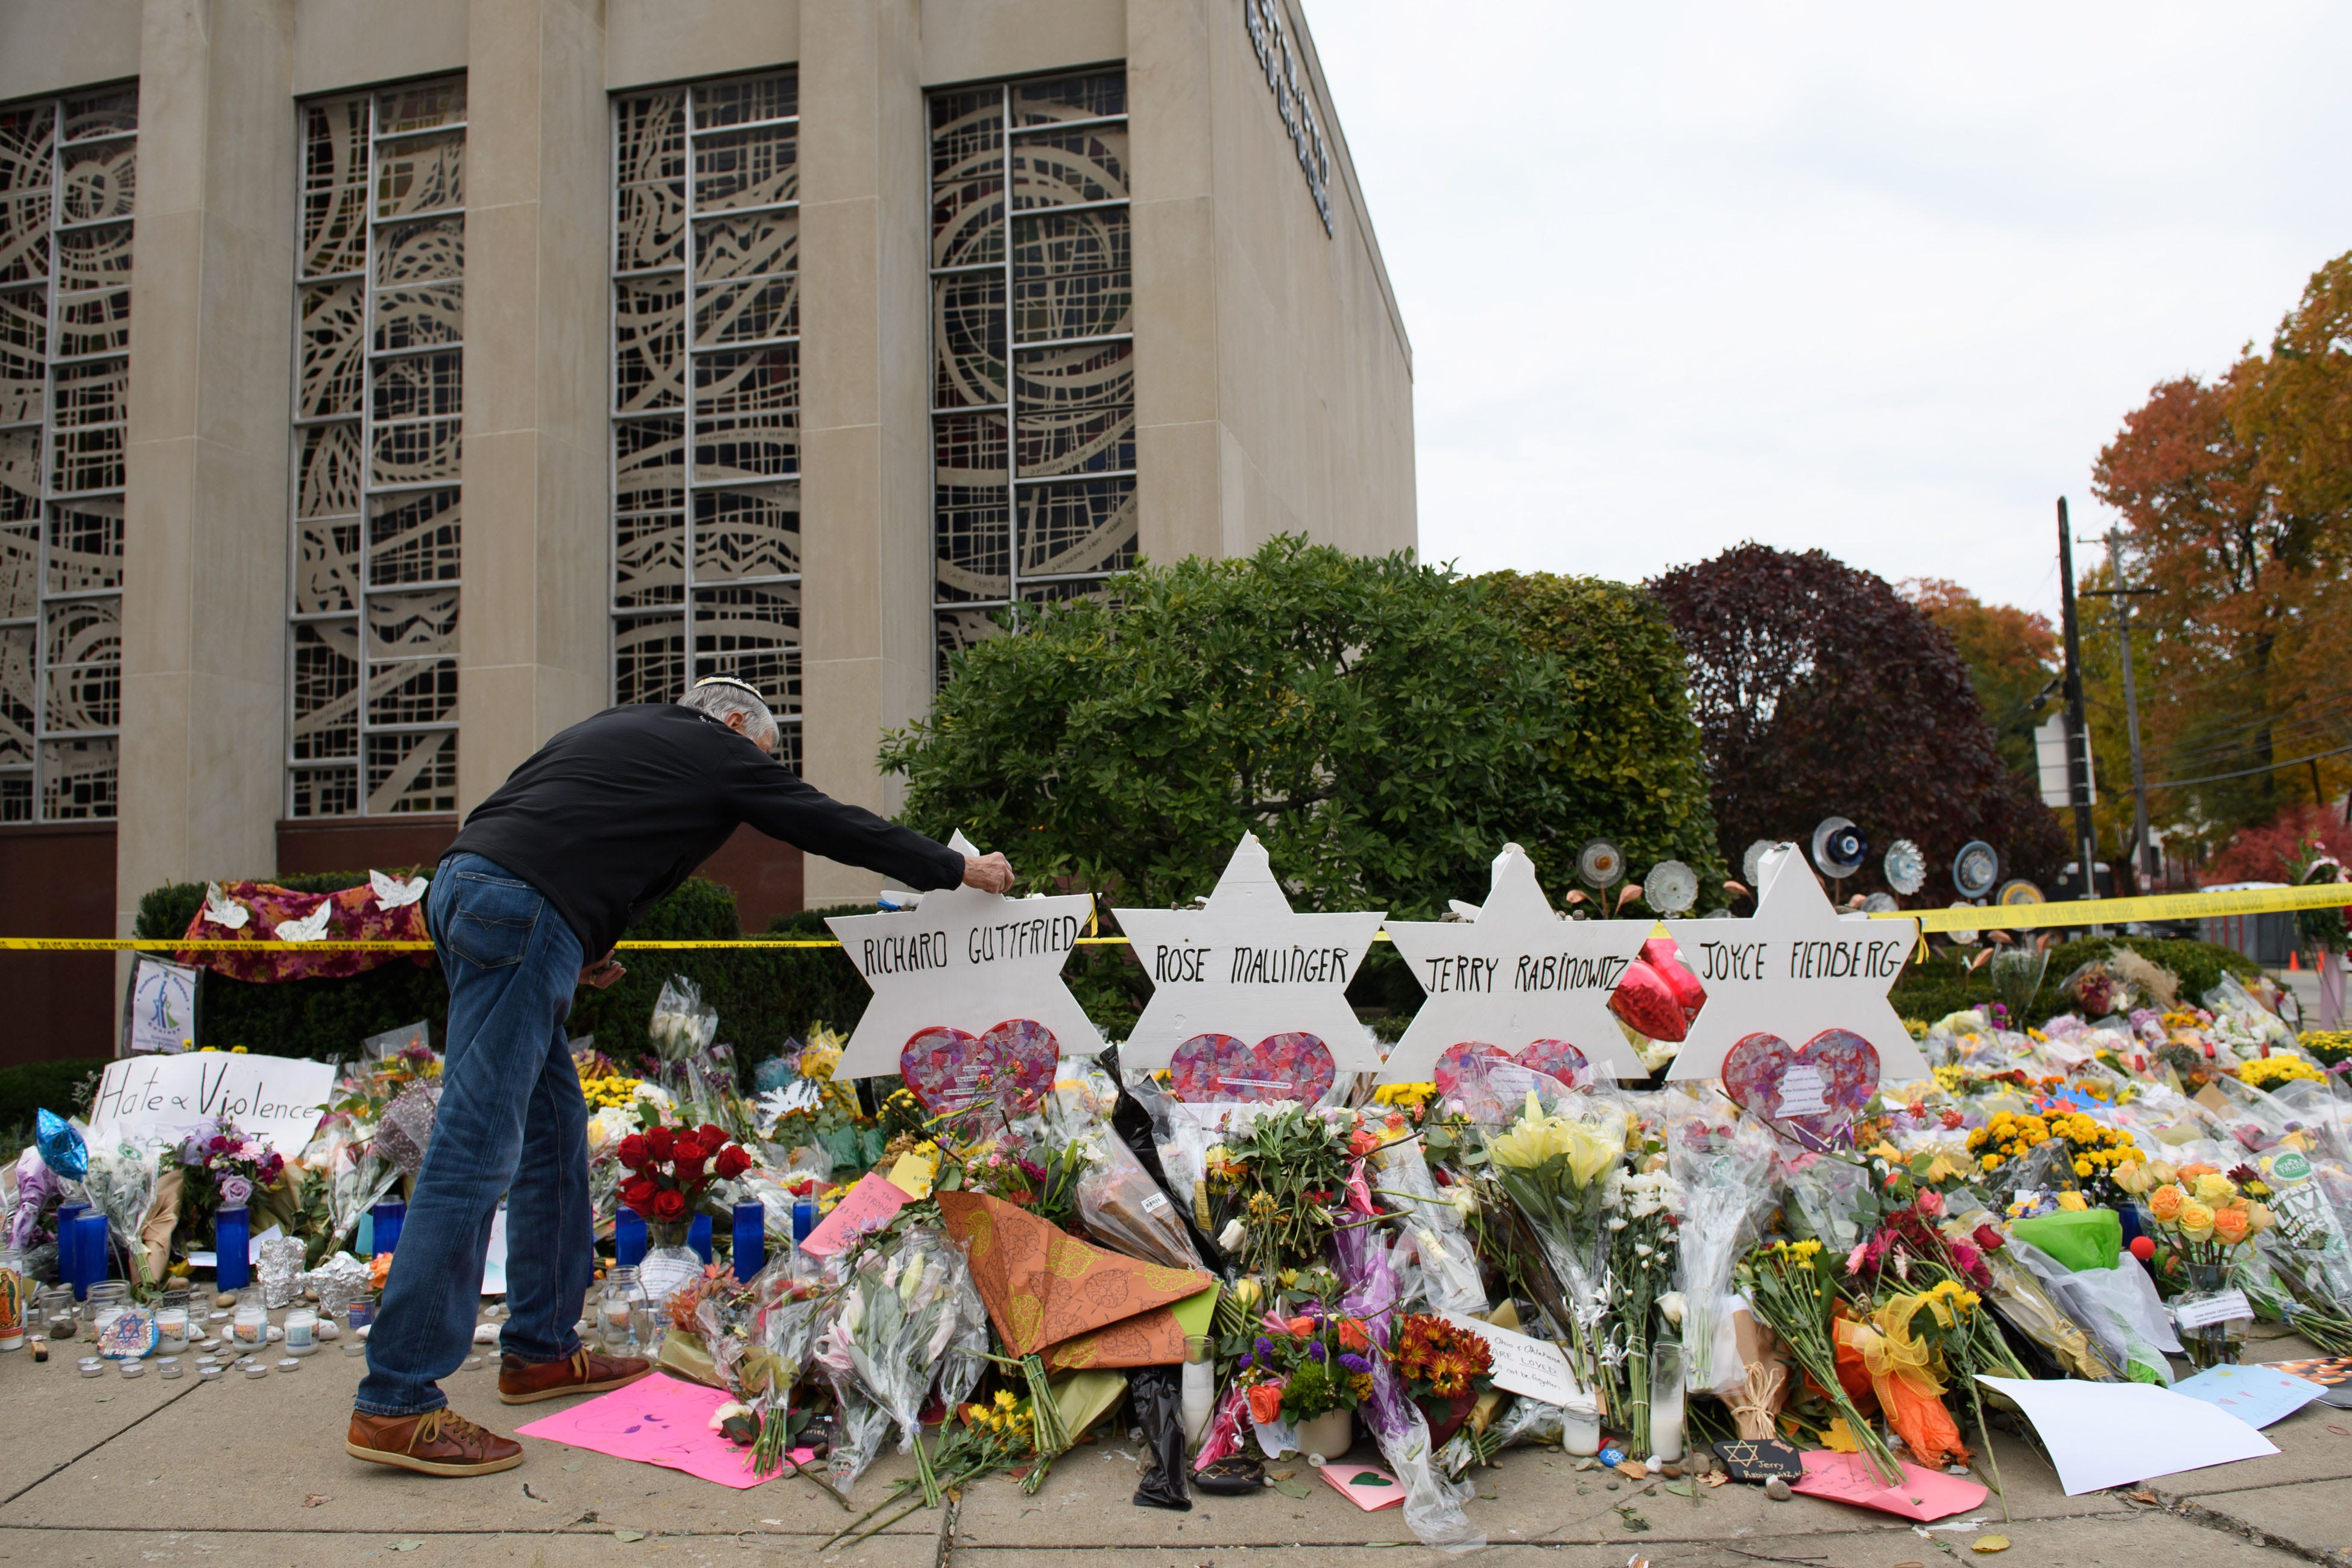 Mourners visit the memorial outside the Tree of Life Synagogue on October 31, 2018 in Pittsburgh, Pa. Eleven people were killed in a mass shooting at the Tree of Life Congregation in Pittsburgh's Squirrel Hill neighborhood on Oct. 27.